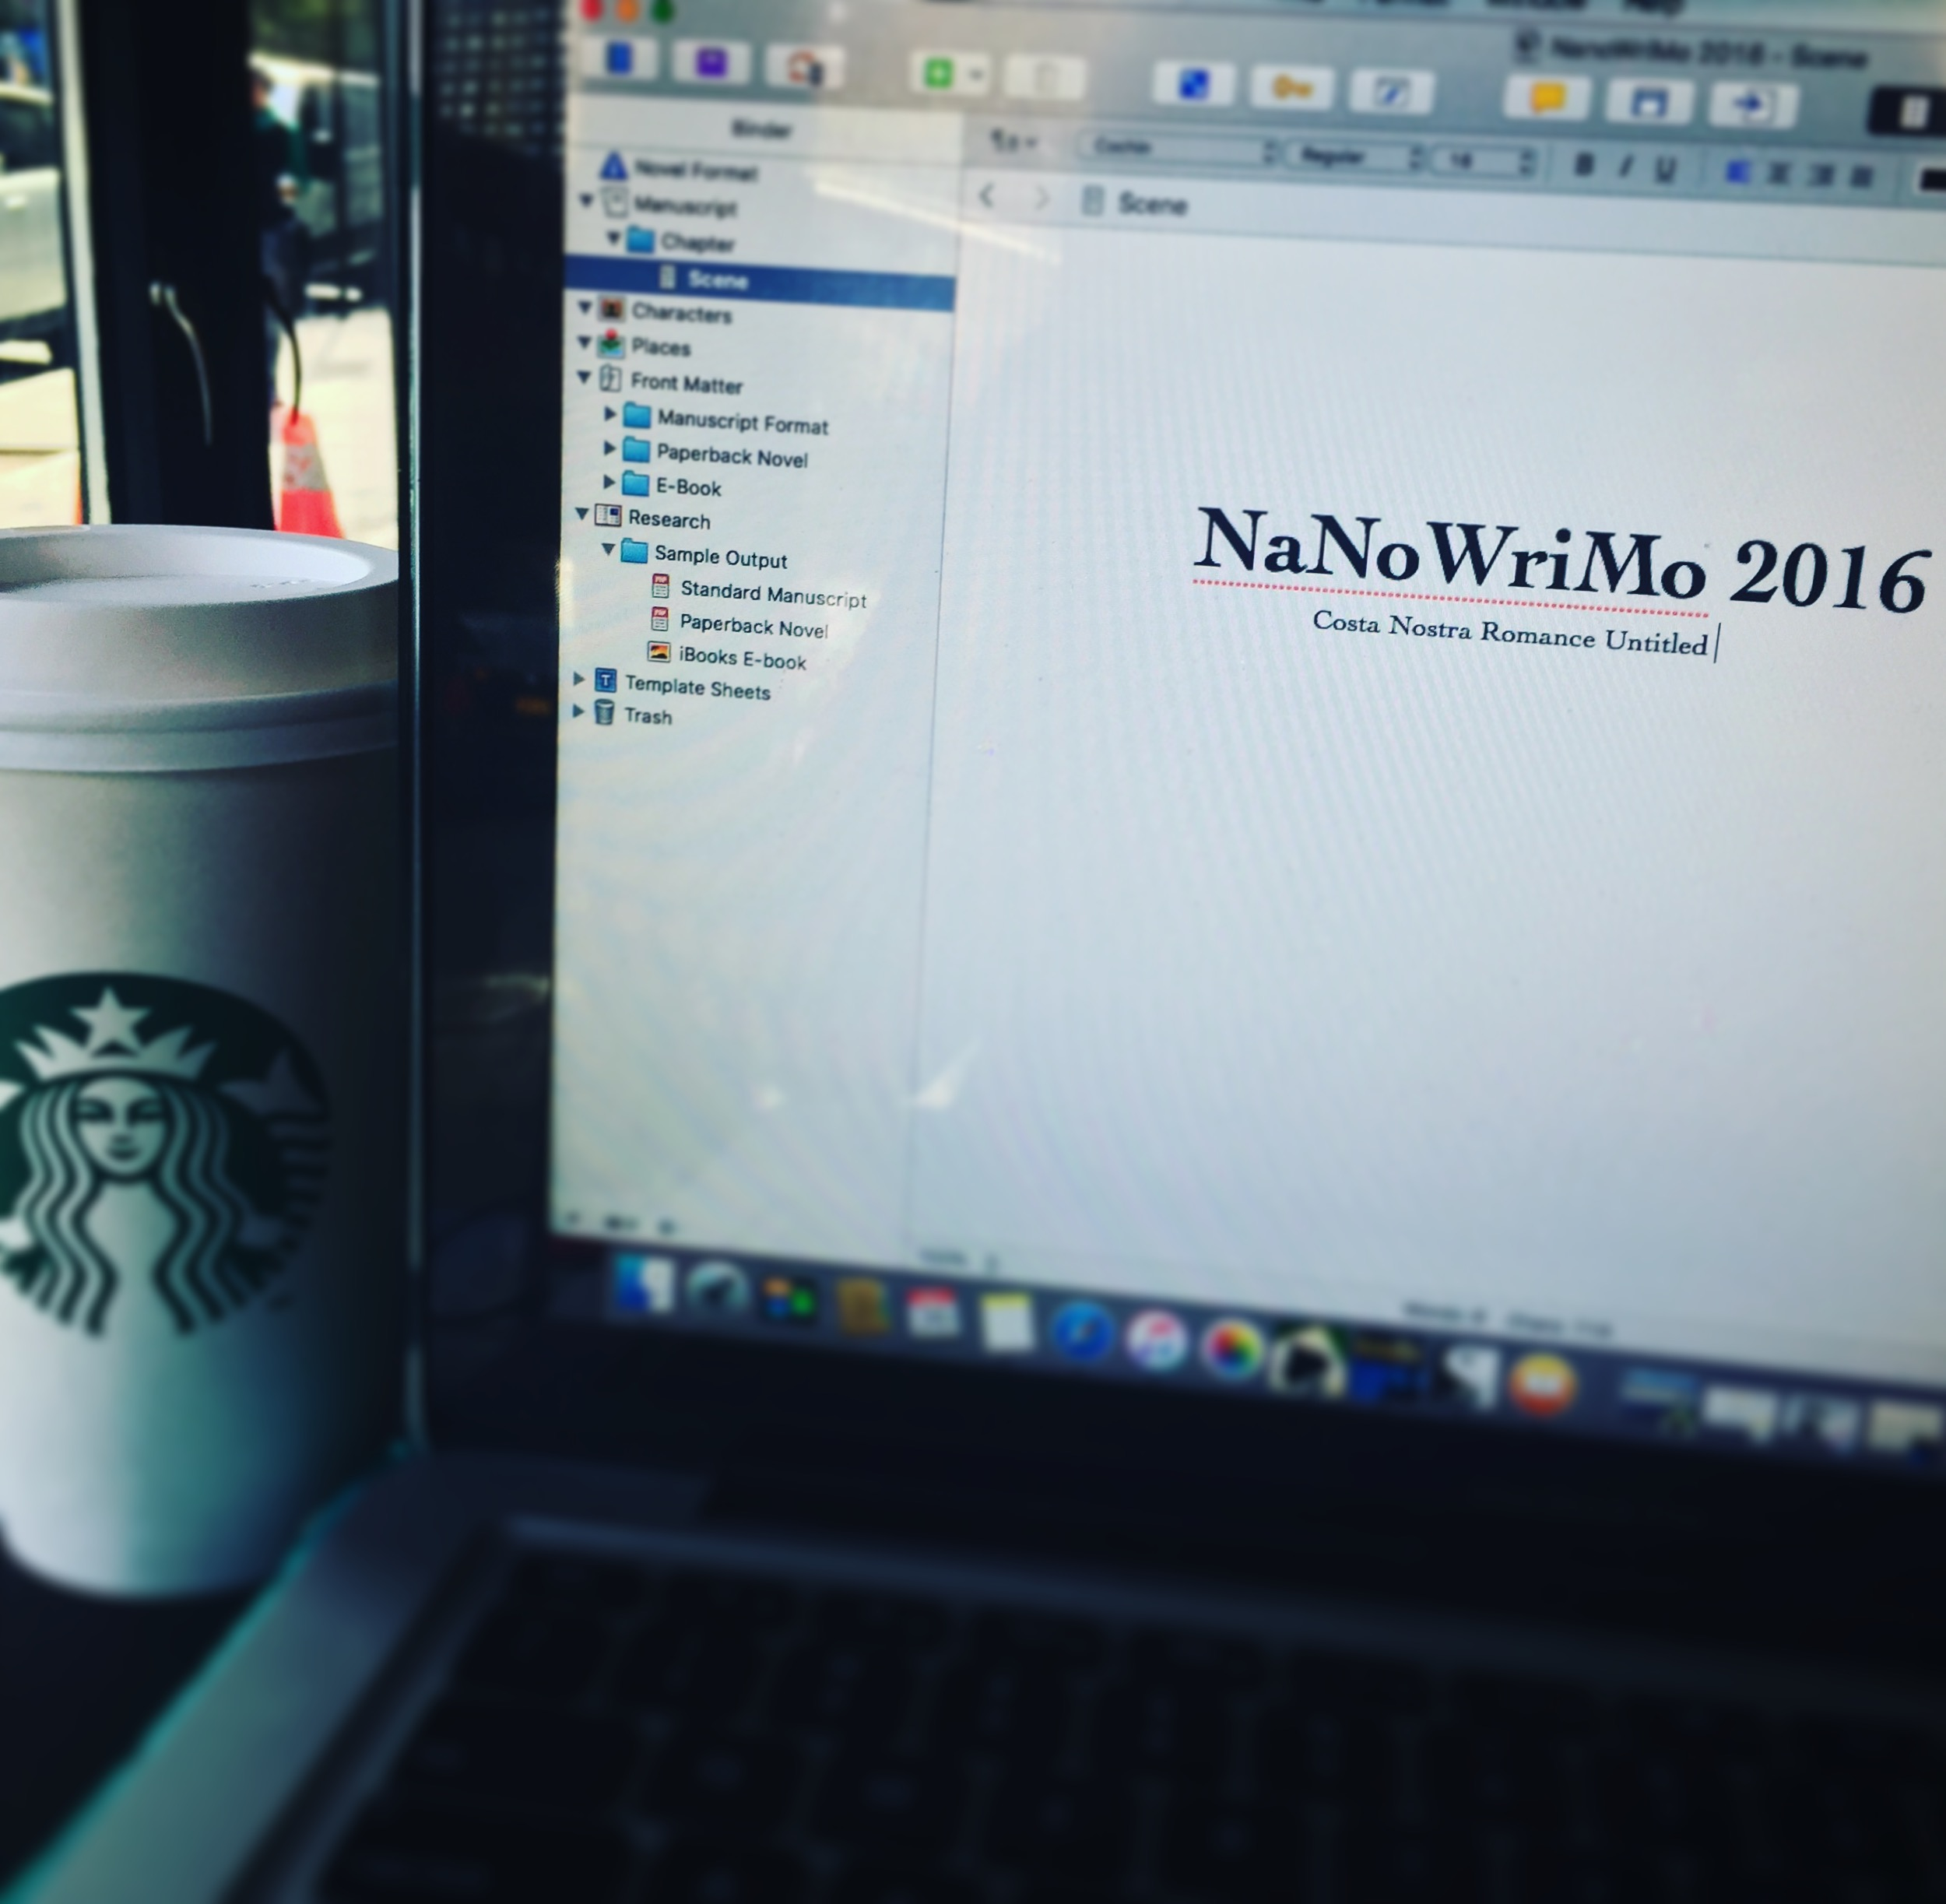 Happy NaNoWriMo!